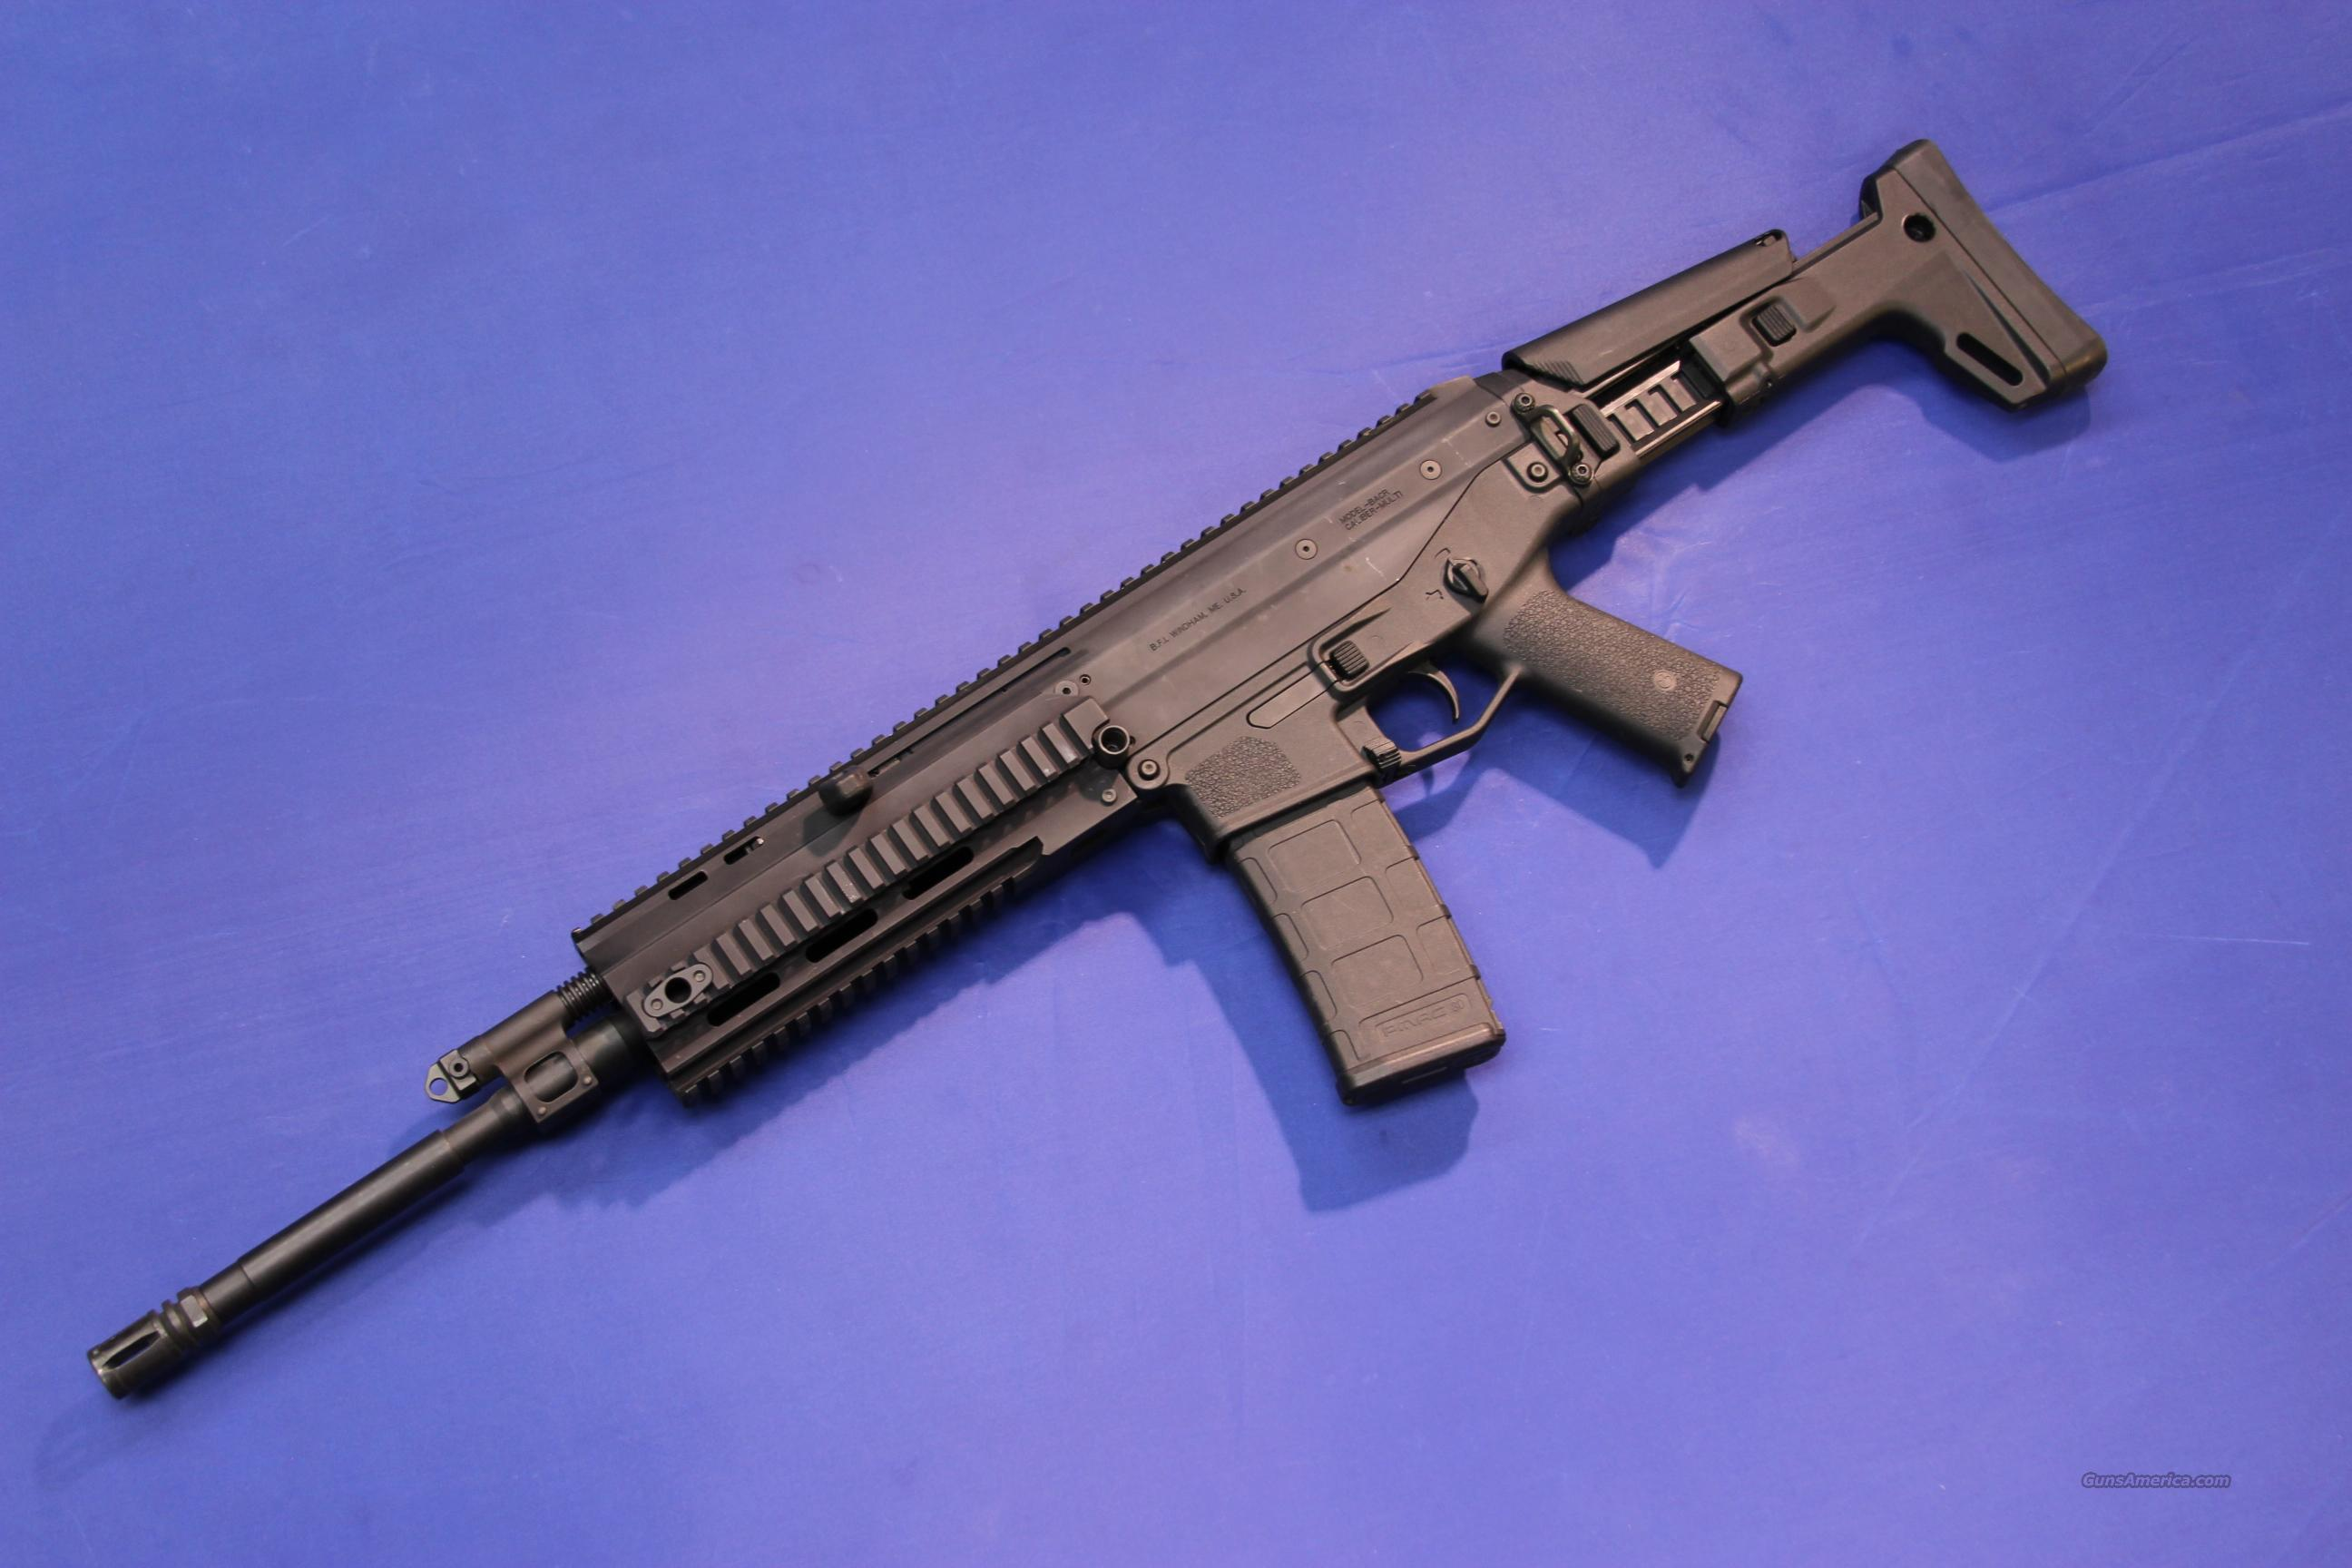 BUSHMASTER ACR ENHANCED CARBINE 5.56 NATO For Sale